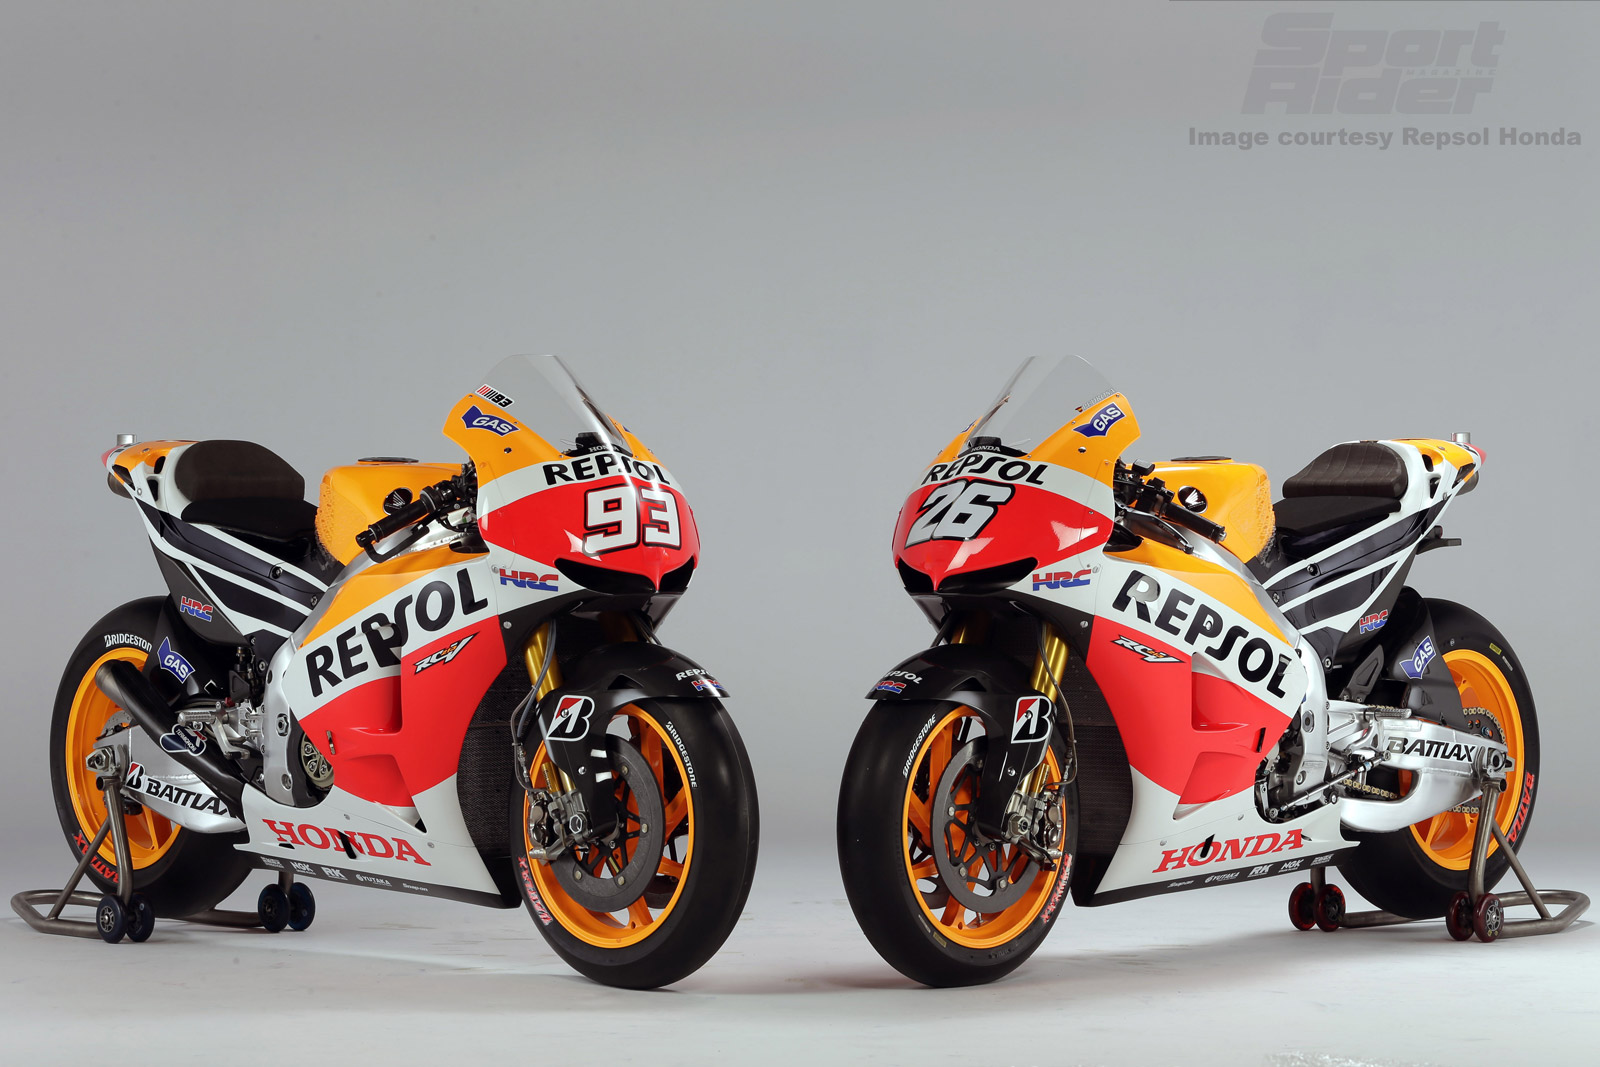 Repsol Honda MotoGP 2015 Wallpaper | Wide Screen Wallpaper 1080p,2K,4K